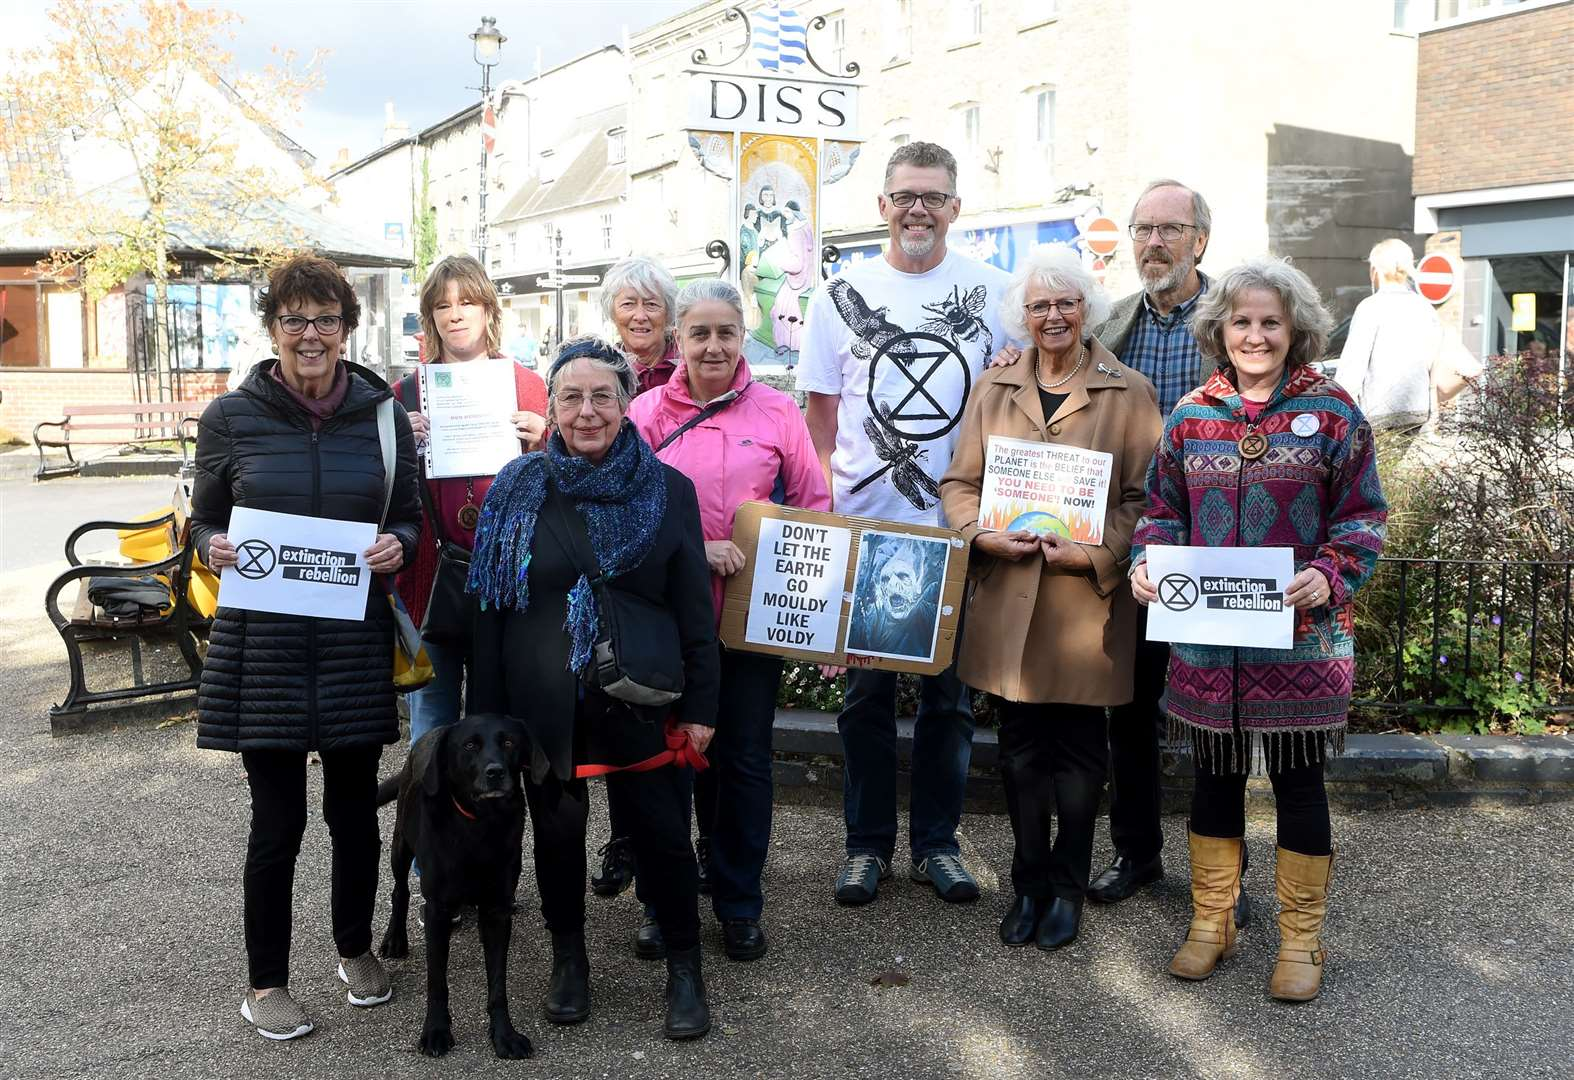 Activists from Diss and surrounding areas join climate protest in London